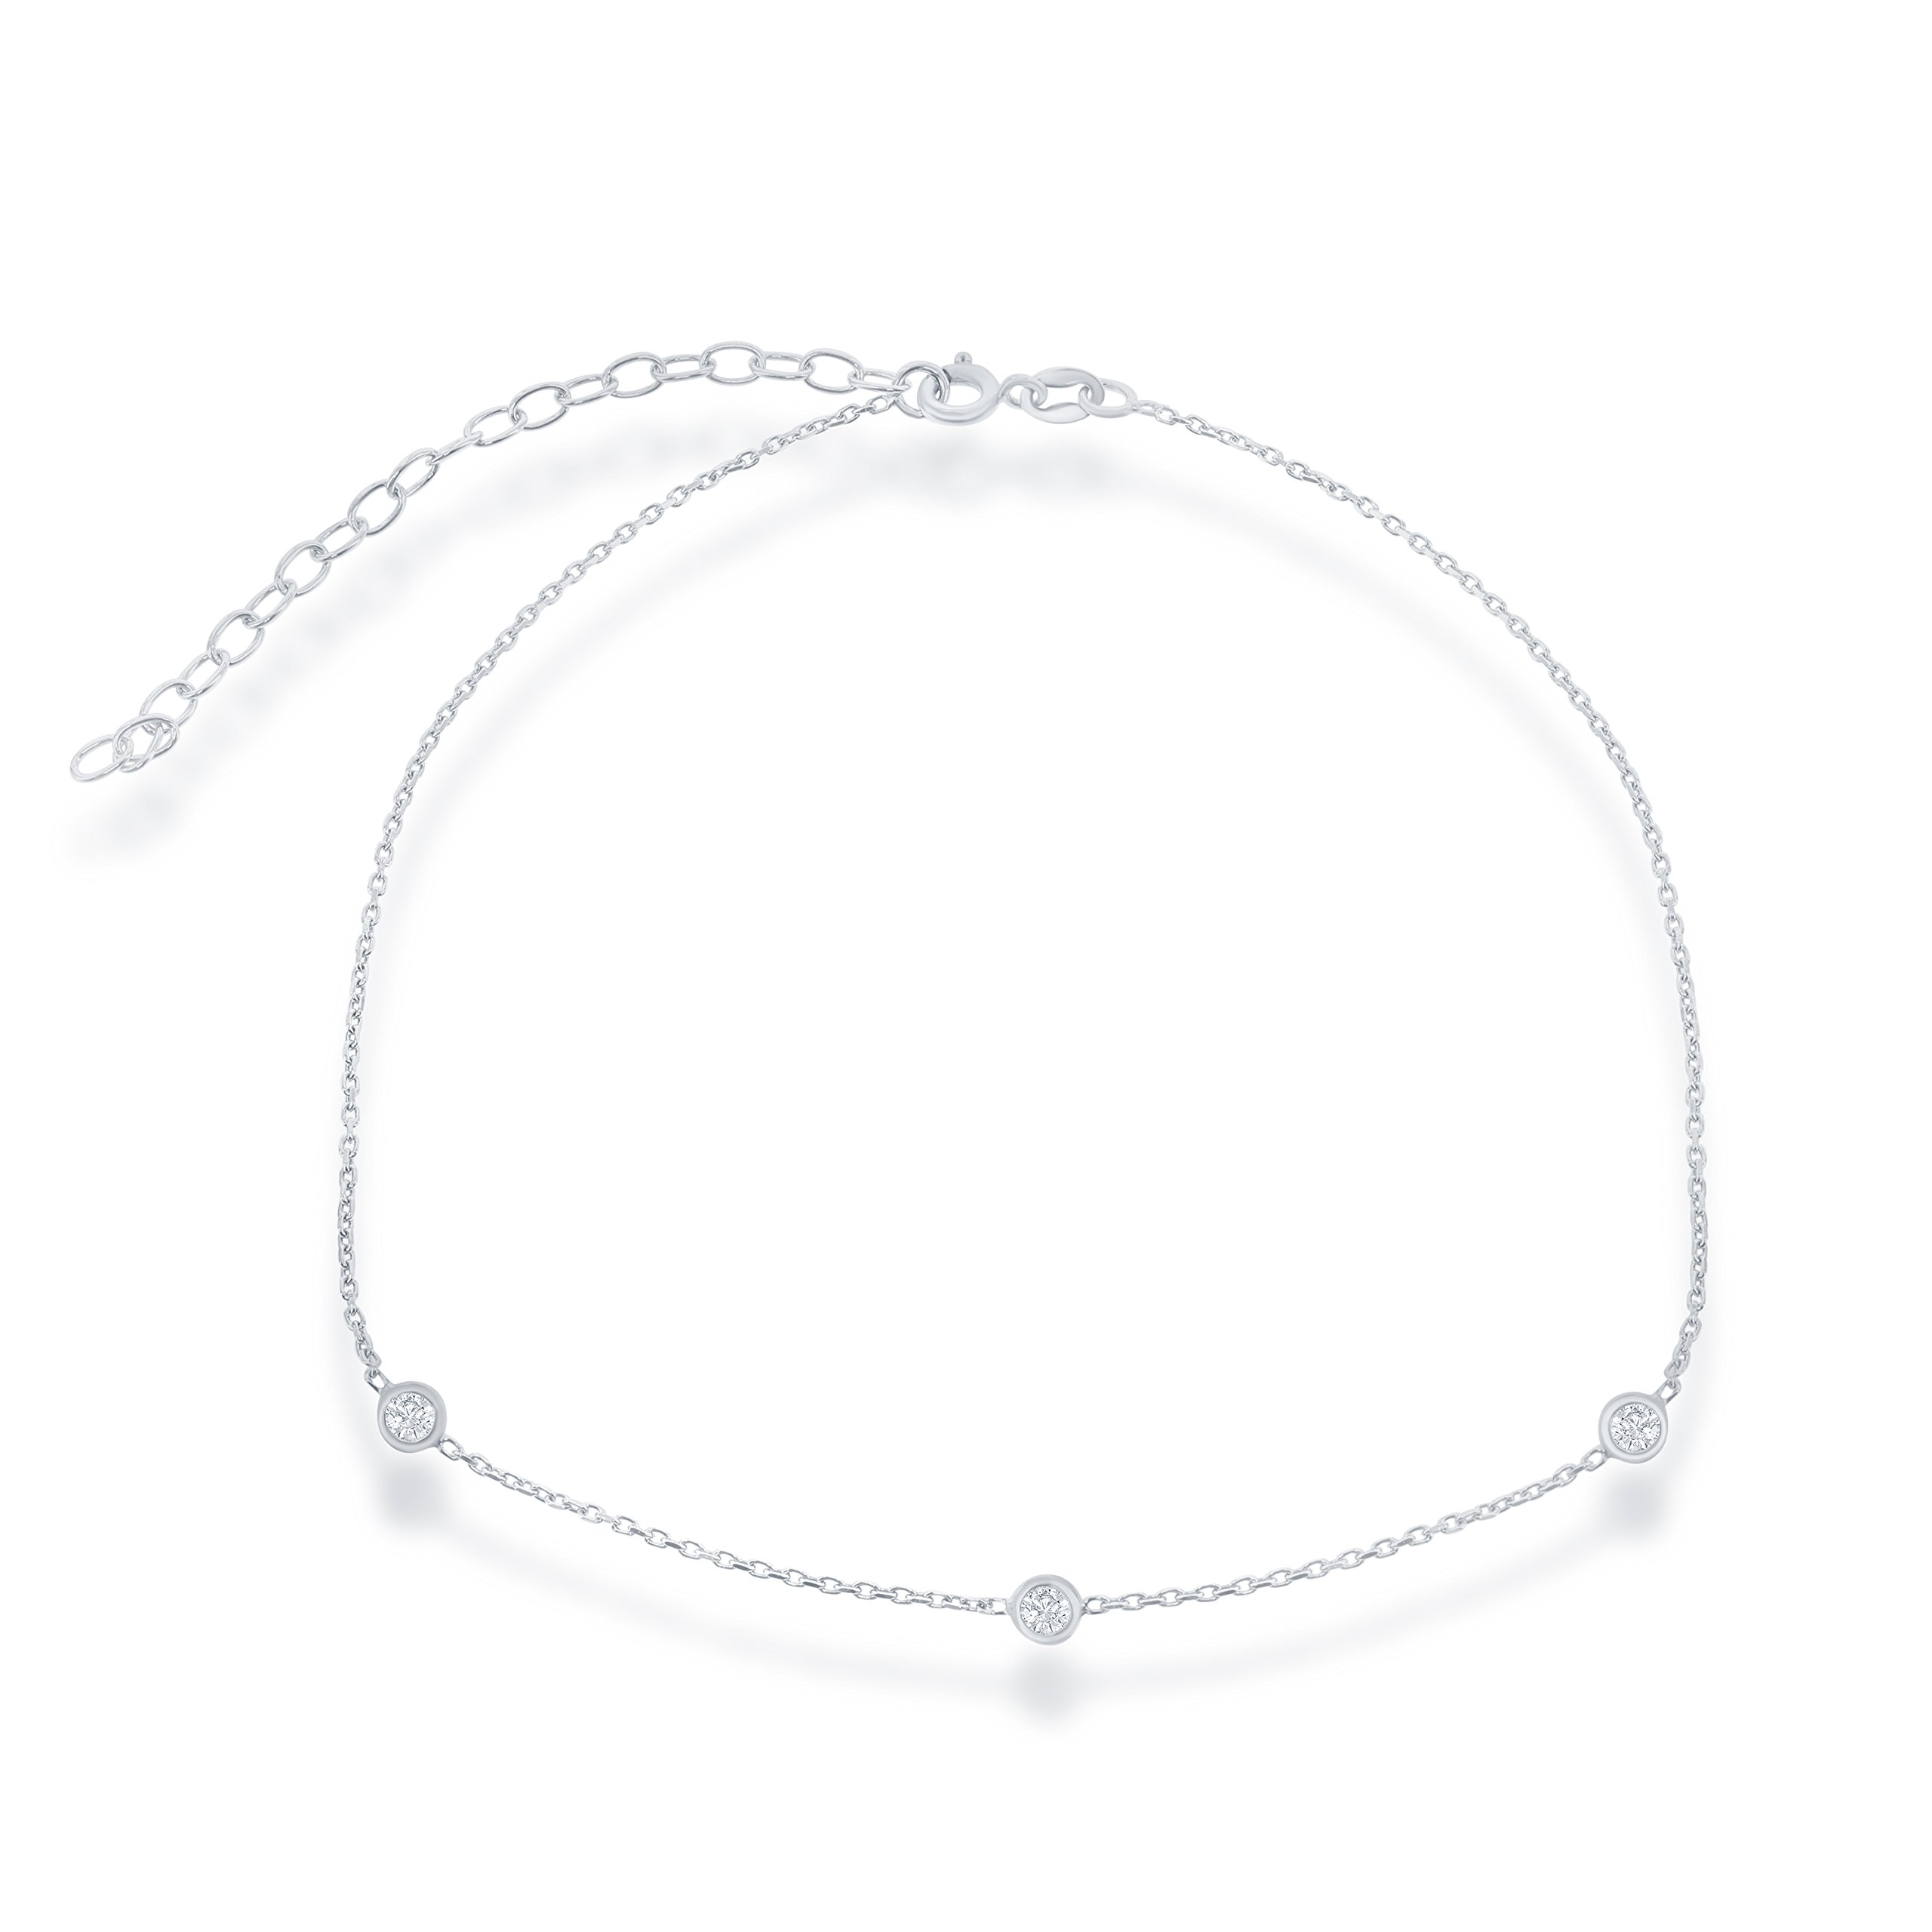 Beaux Bijoux Sterling Silver 12'' + 3'' CZ Station by the Yard Choker Necklace